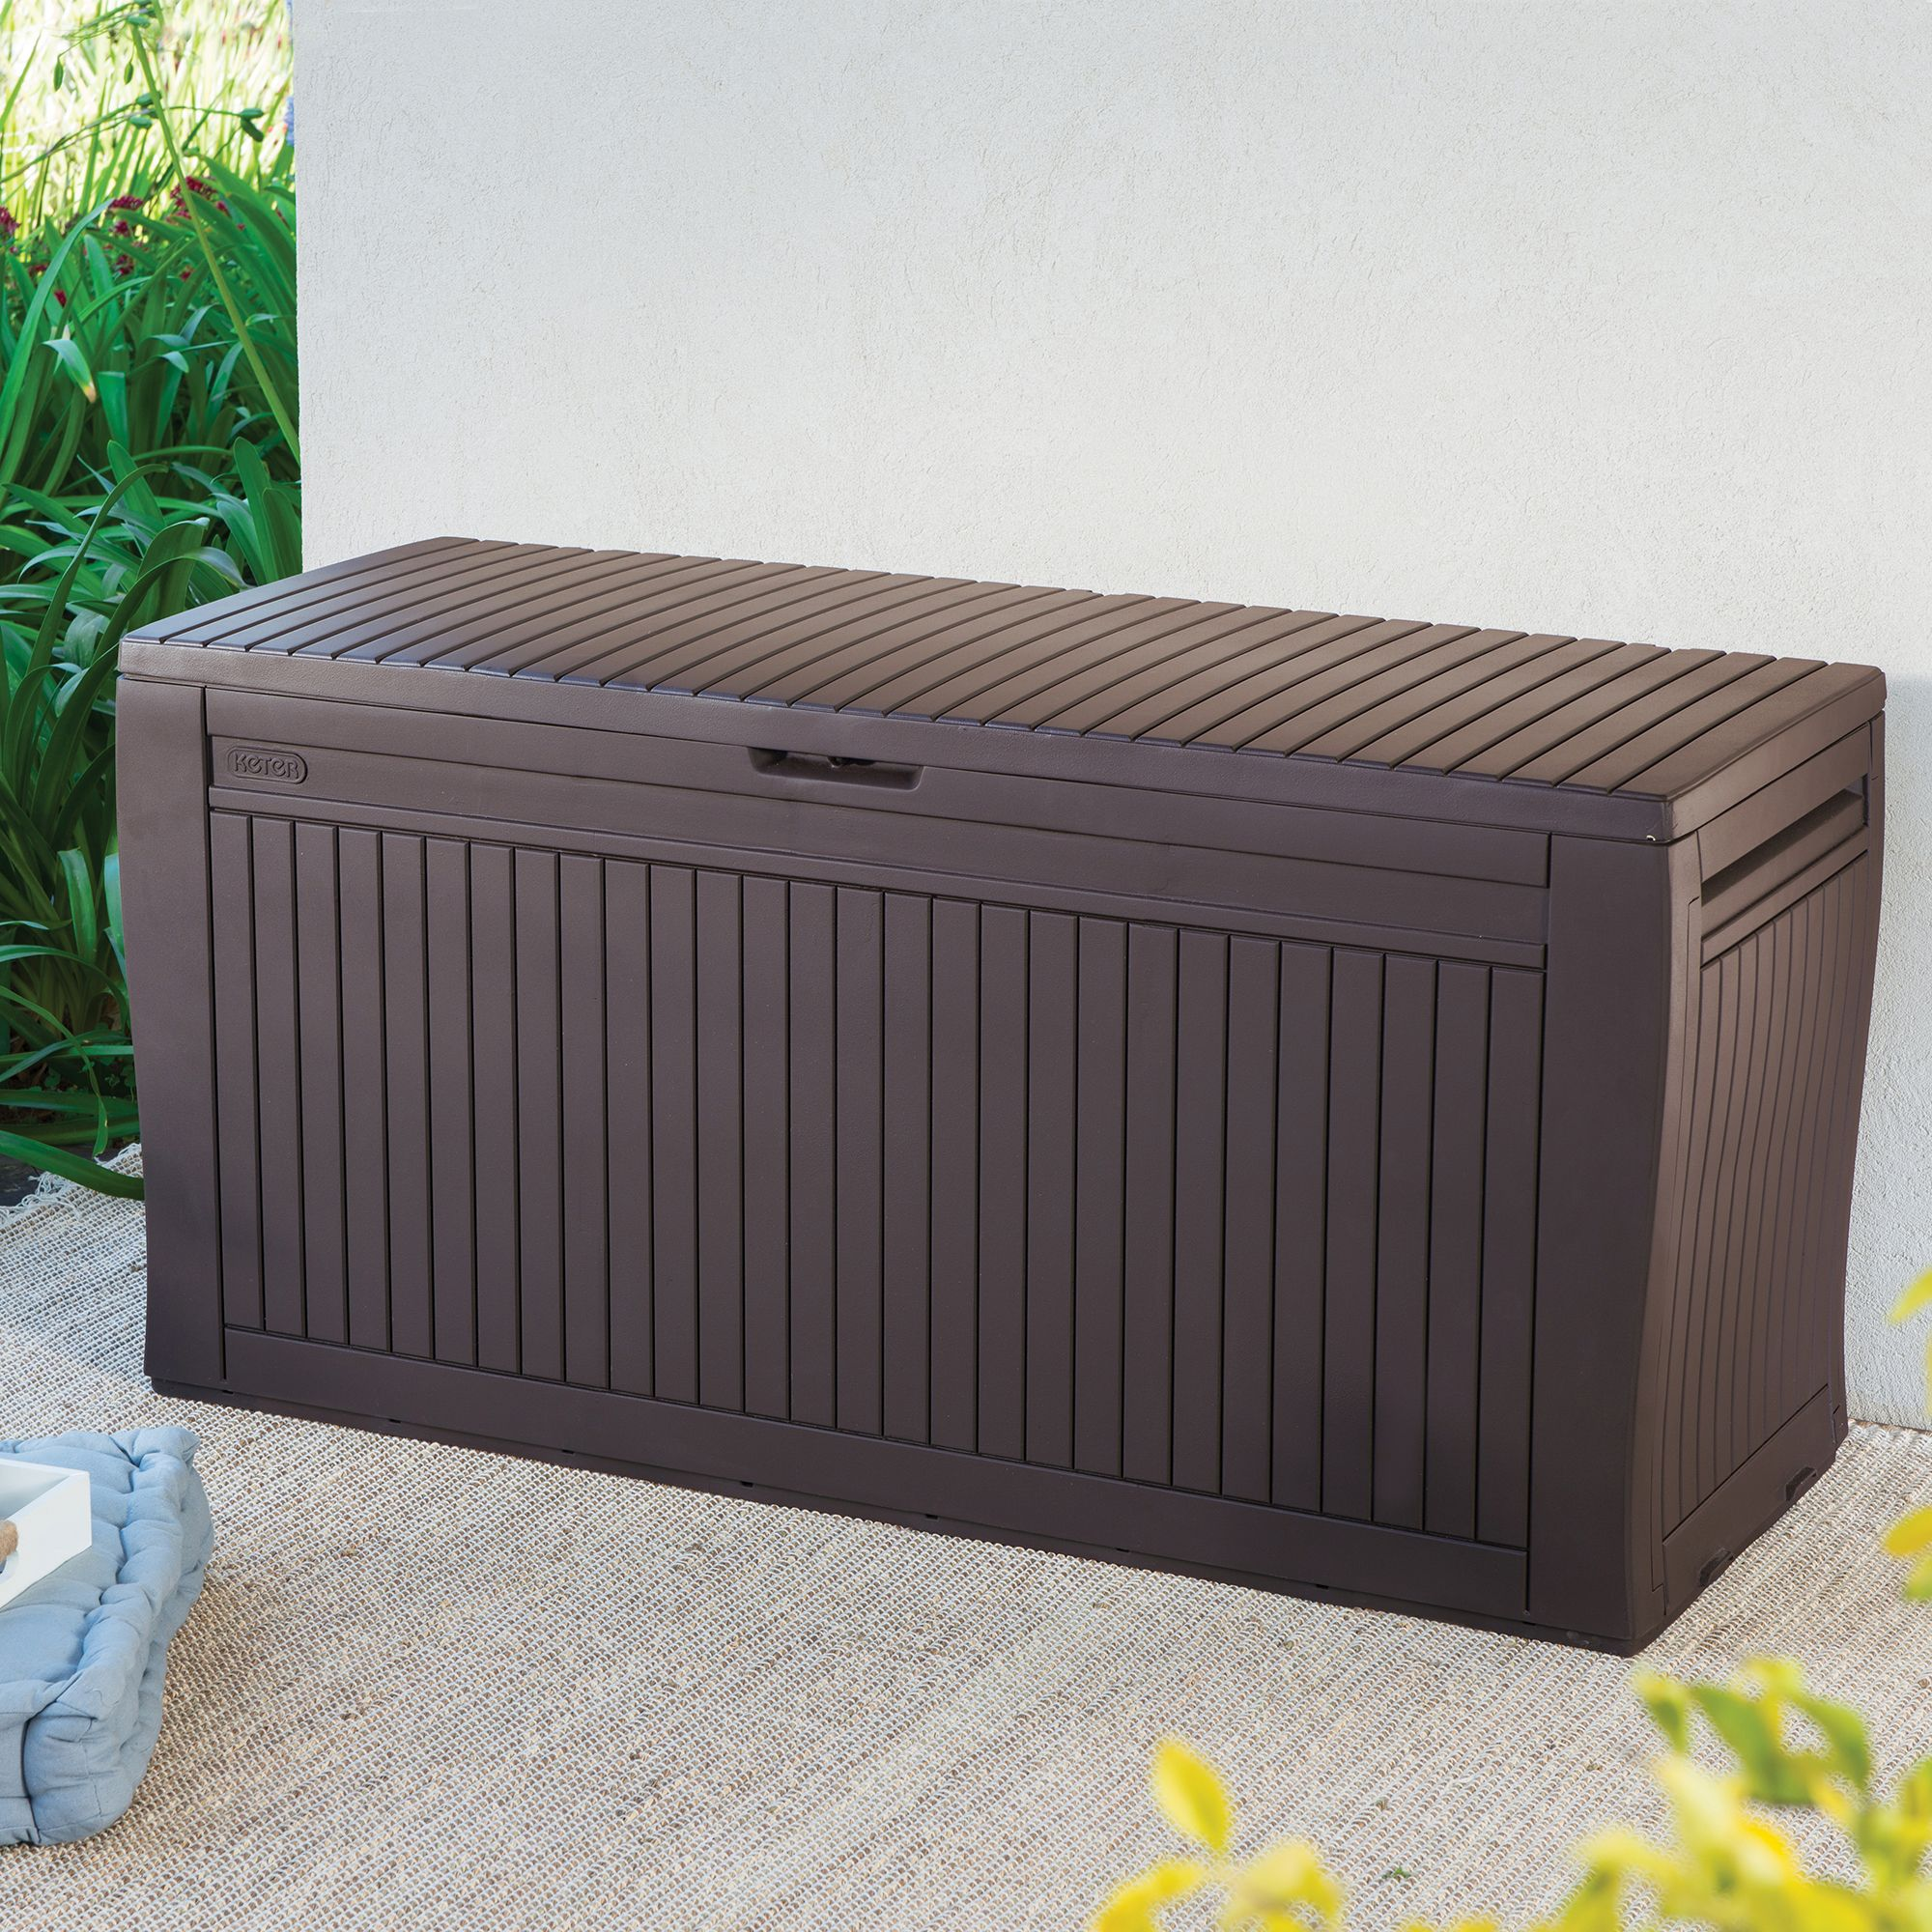 Comfy Wood Effect Plastic Patio Storage Box. Garden Storage Box   DIY